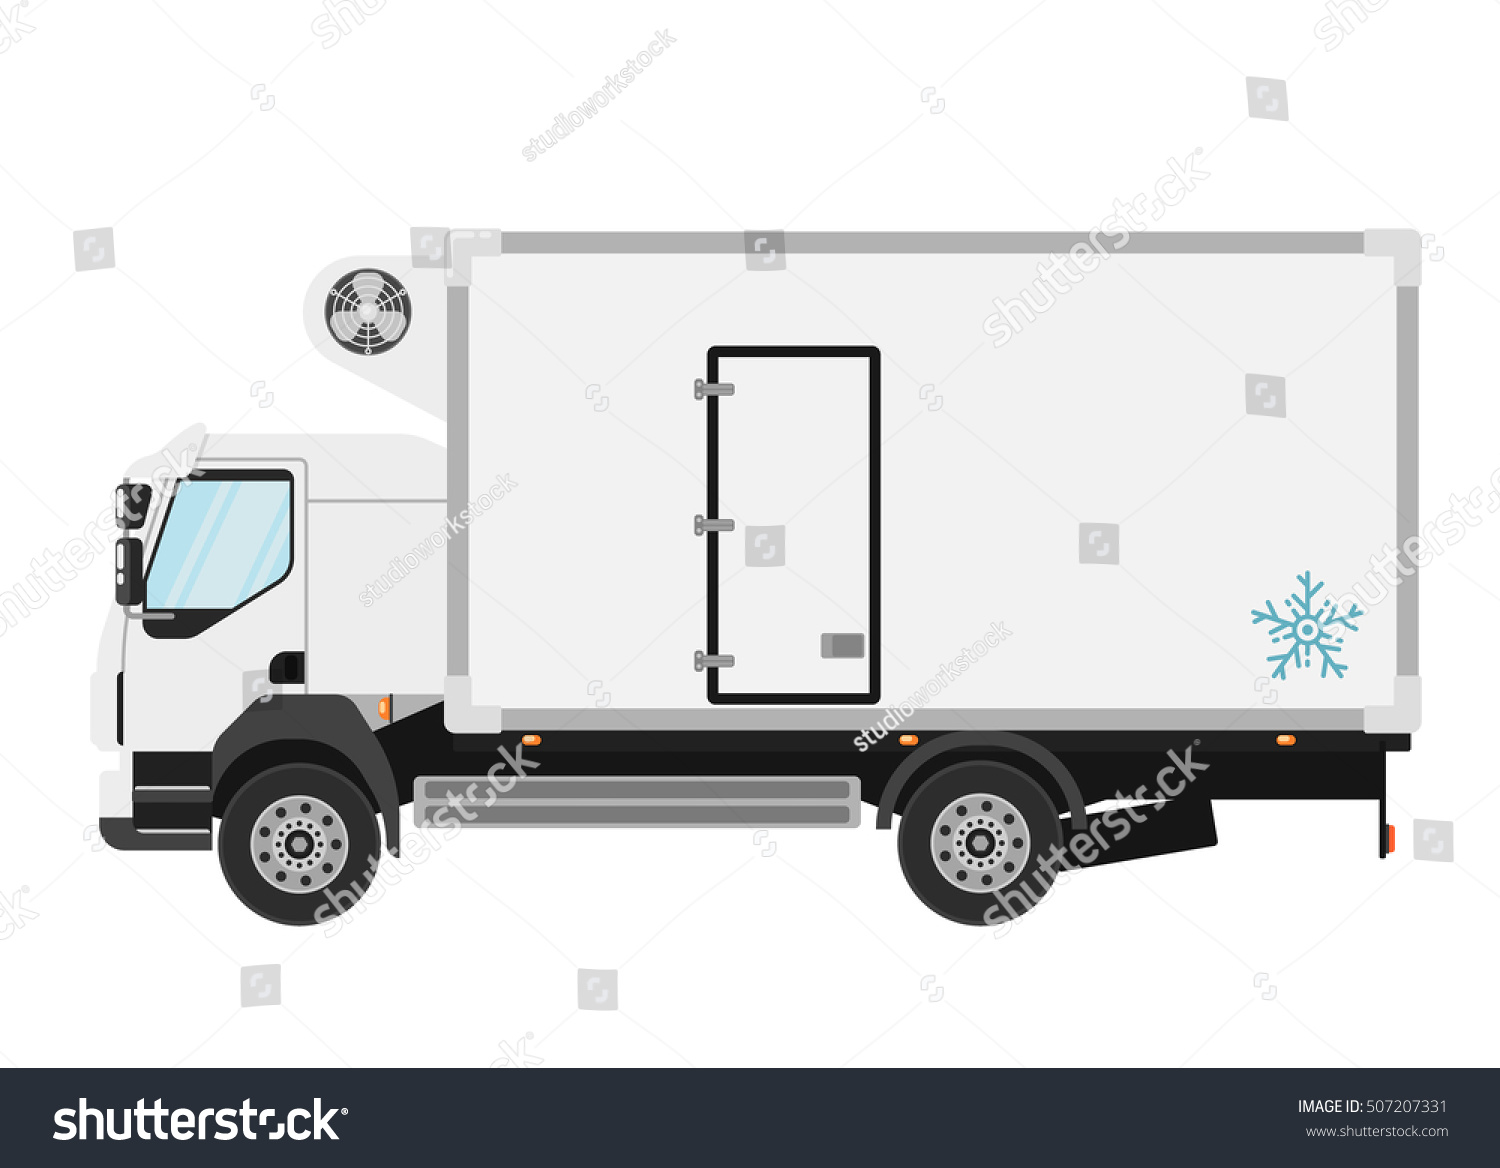 Refrigerated Truck Vehicle : Commercial refrigerated truck isolated on white stock